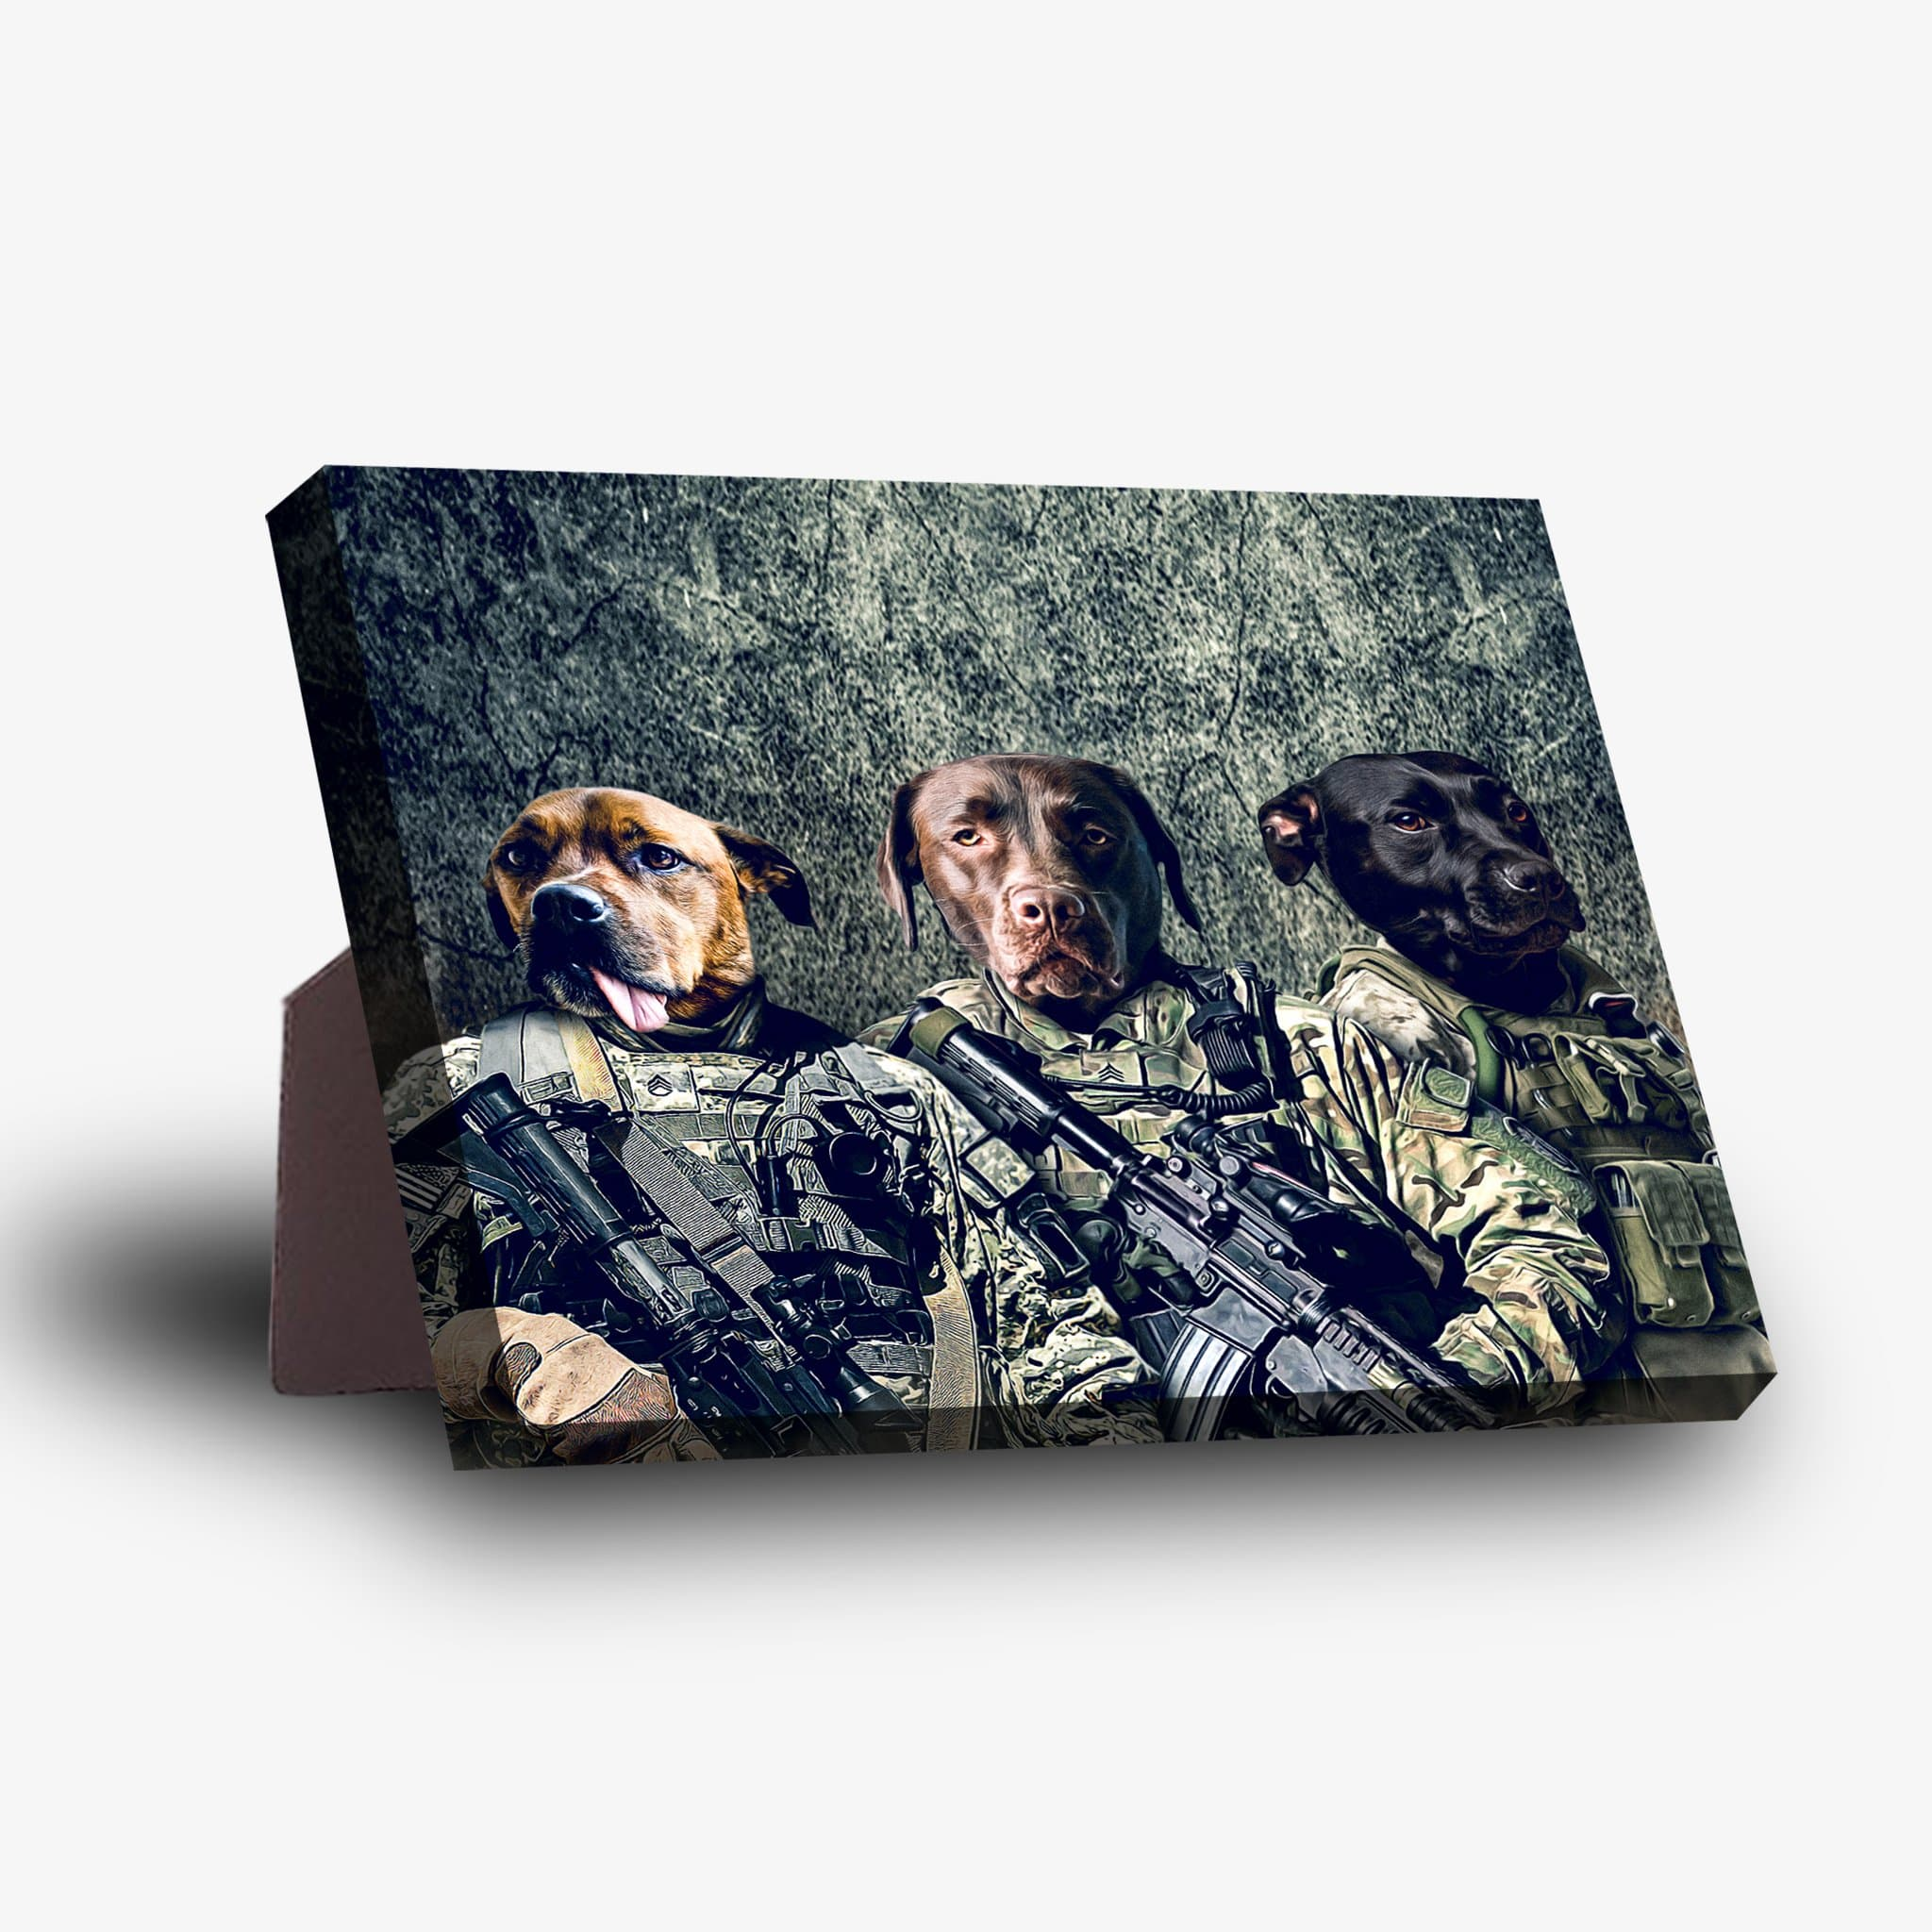 'The Army Veterans' Personalized 3 Pet Standing Canvas